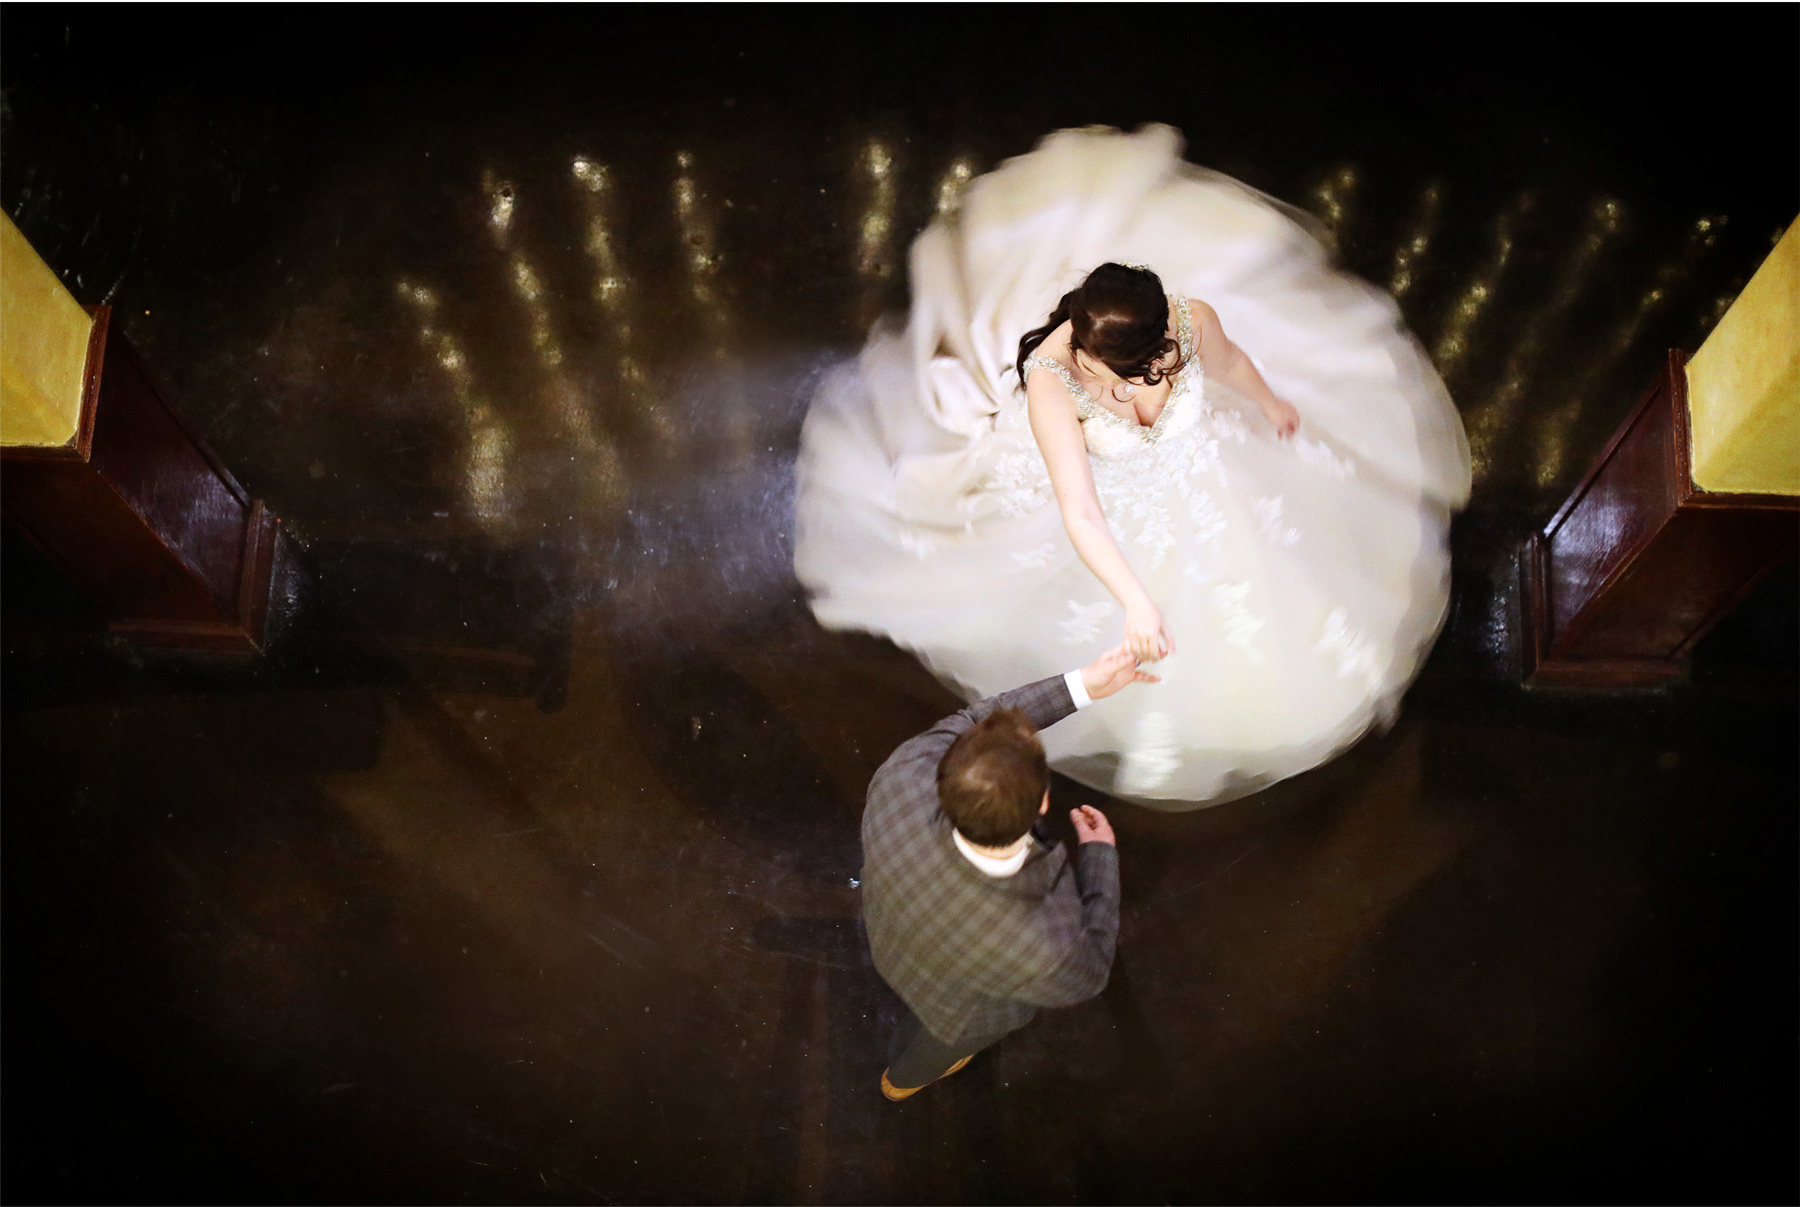 21-Minneapolis-Wedding-Photography-by-Vick-Photography-Historic-Concord-Exchange-Reception-Dance-Rachael-and-Benjamin.jpg